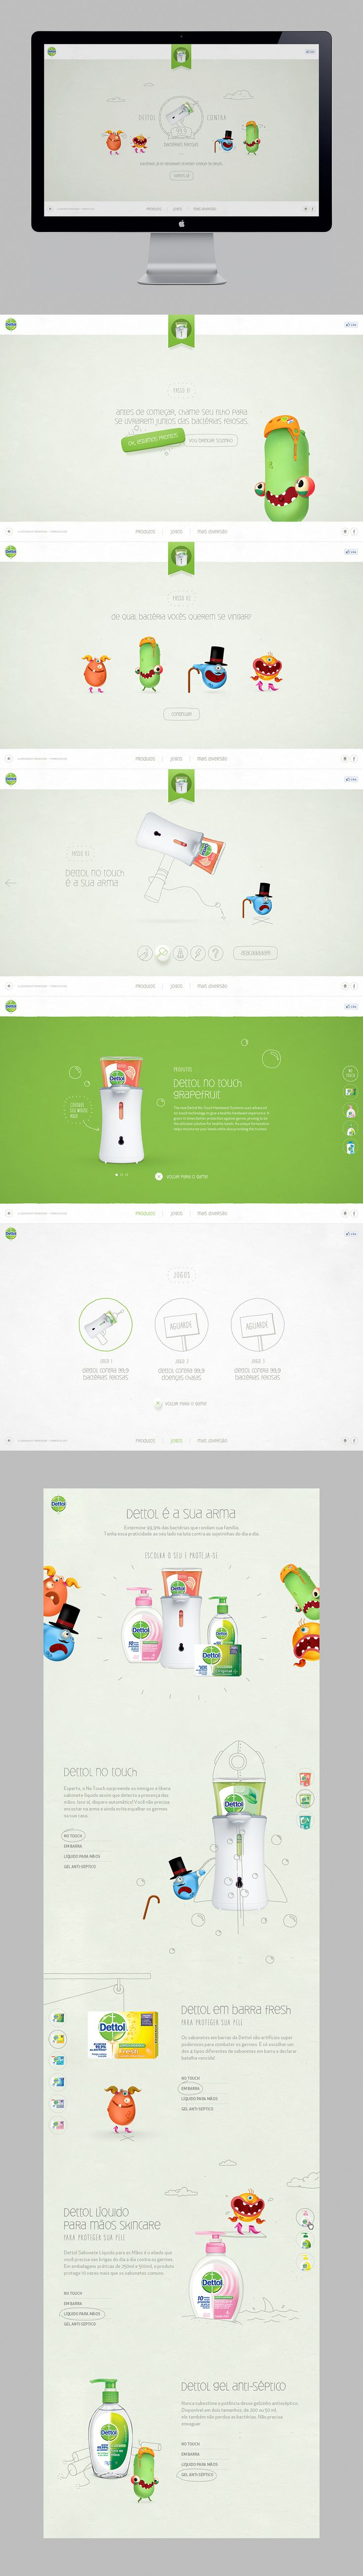 Dettol Ulgy Germs by Diogo Akio — DCollection™ #hotsite